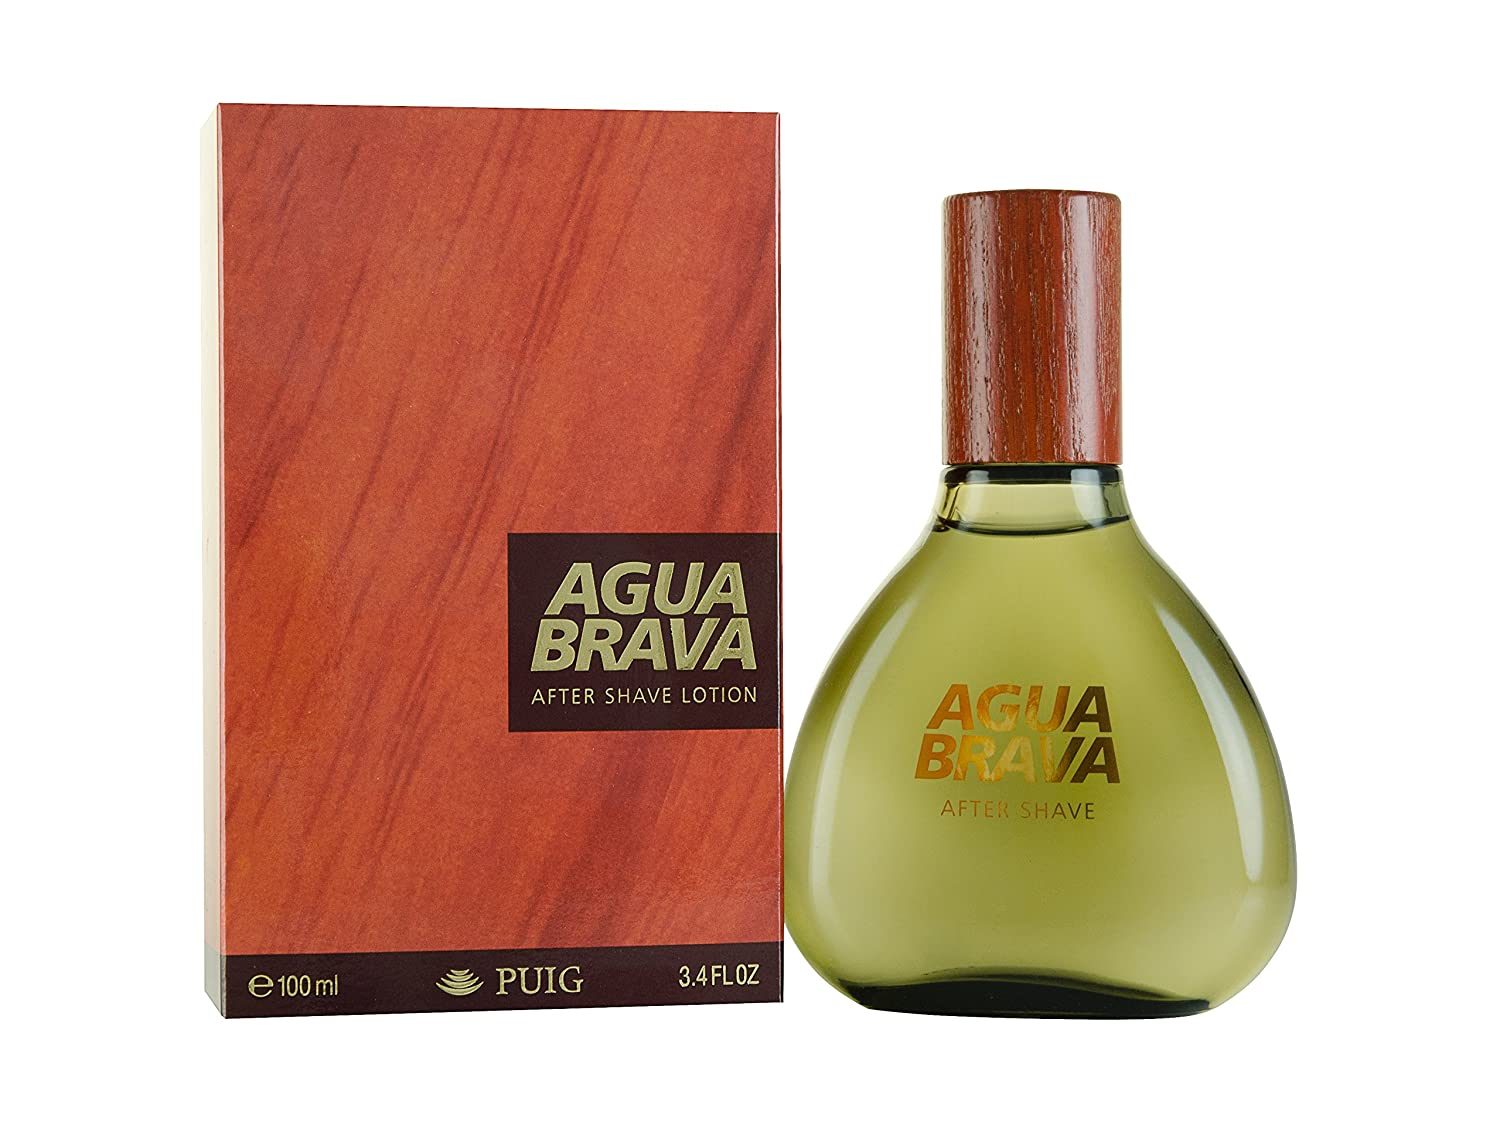 Puig After Shave Lotion Agua Brava for Men, 100 ml CADYSSA 116964